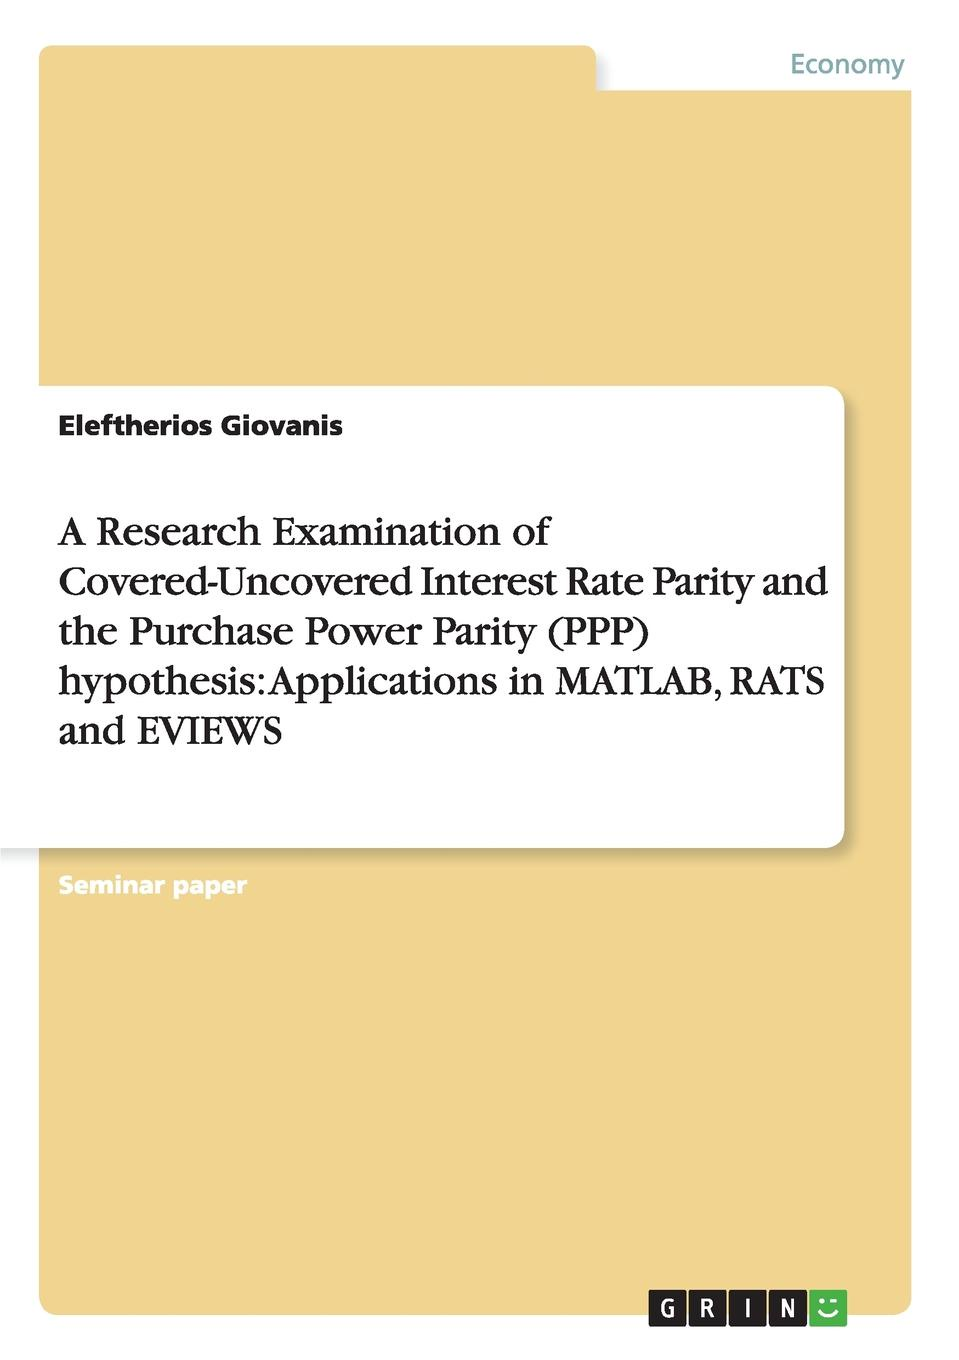 Eleftherios Giovanis A Research Examination of Covered-Uncovered Interest Rate Parity and the Purchase Power Parity (PPP) hypothesis. Applications in MATLAB, RATS and EVIEWS t omay energy consumption and economic growth evidence from nonlinear panel cointegration and causality tests